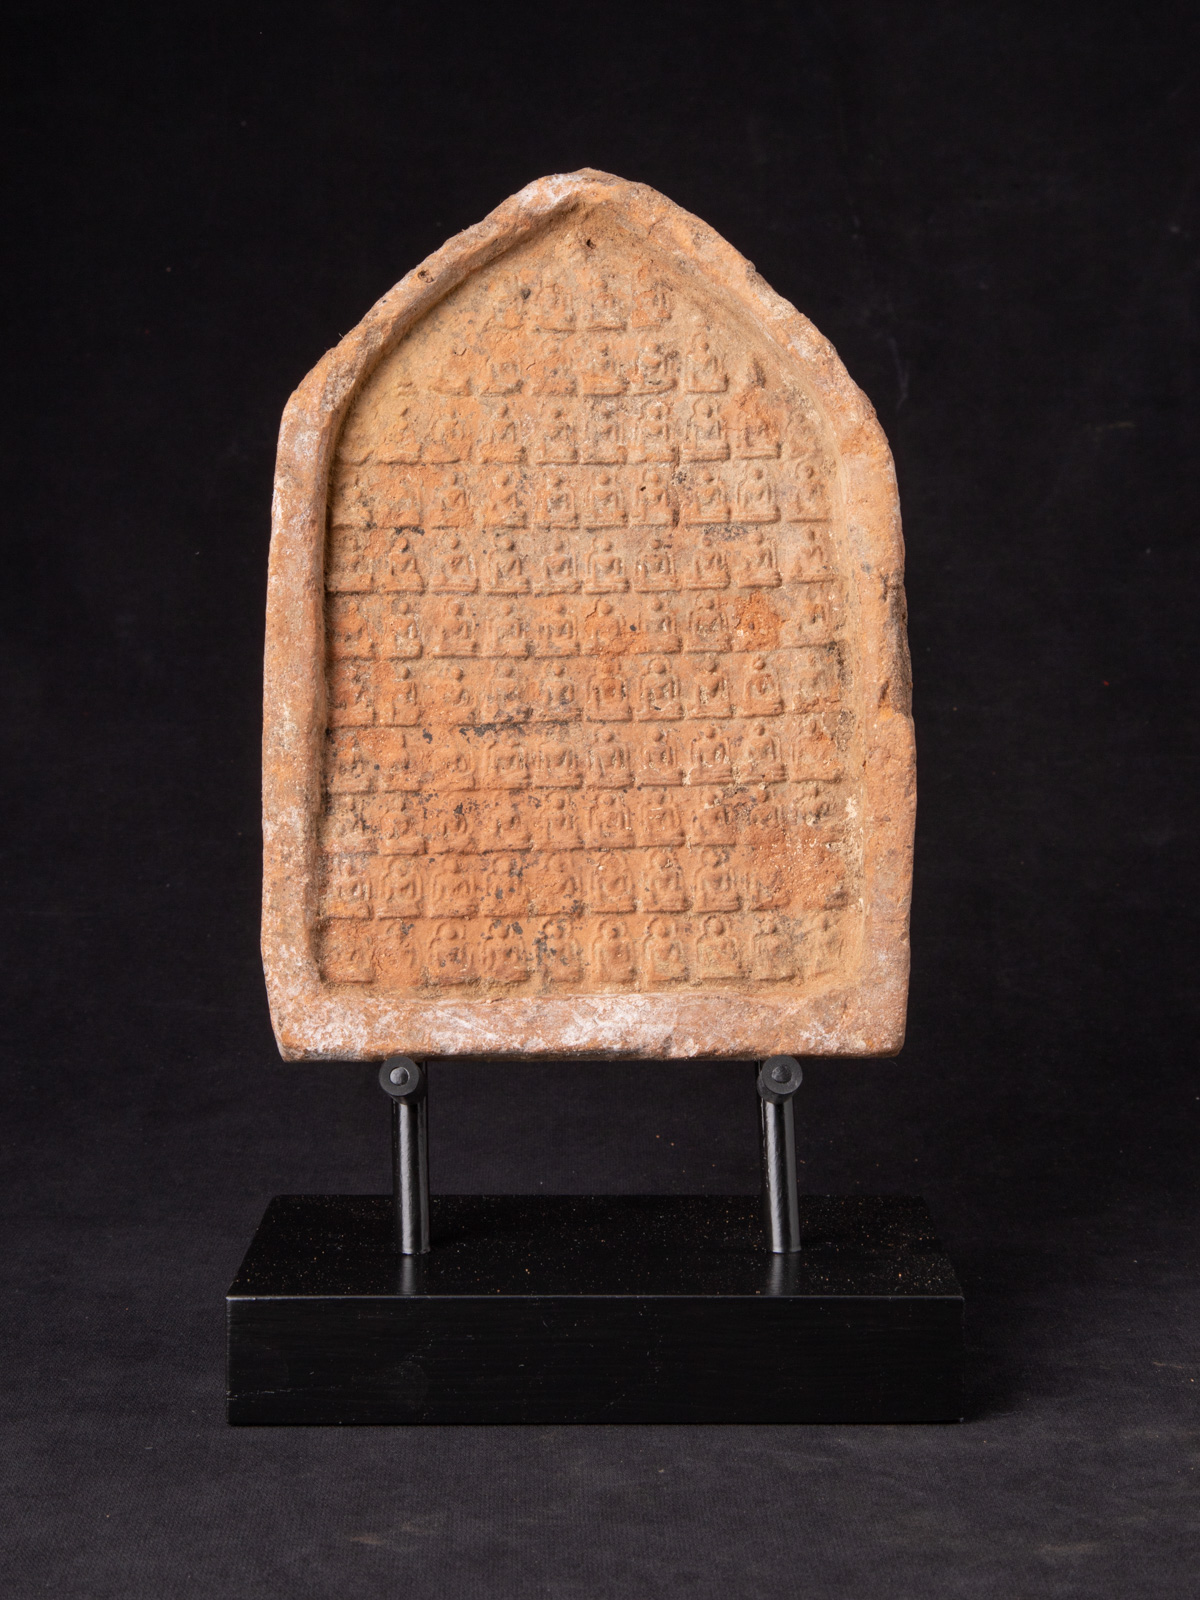 12. Jh. Pagan Tablet aus Birma